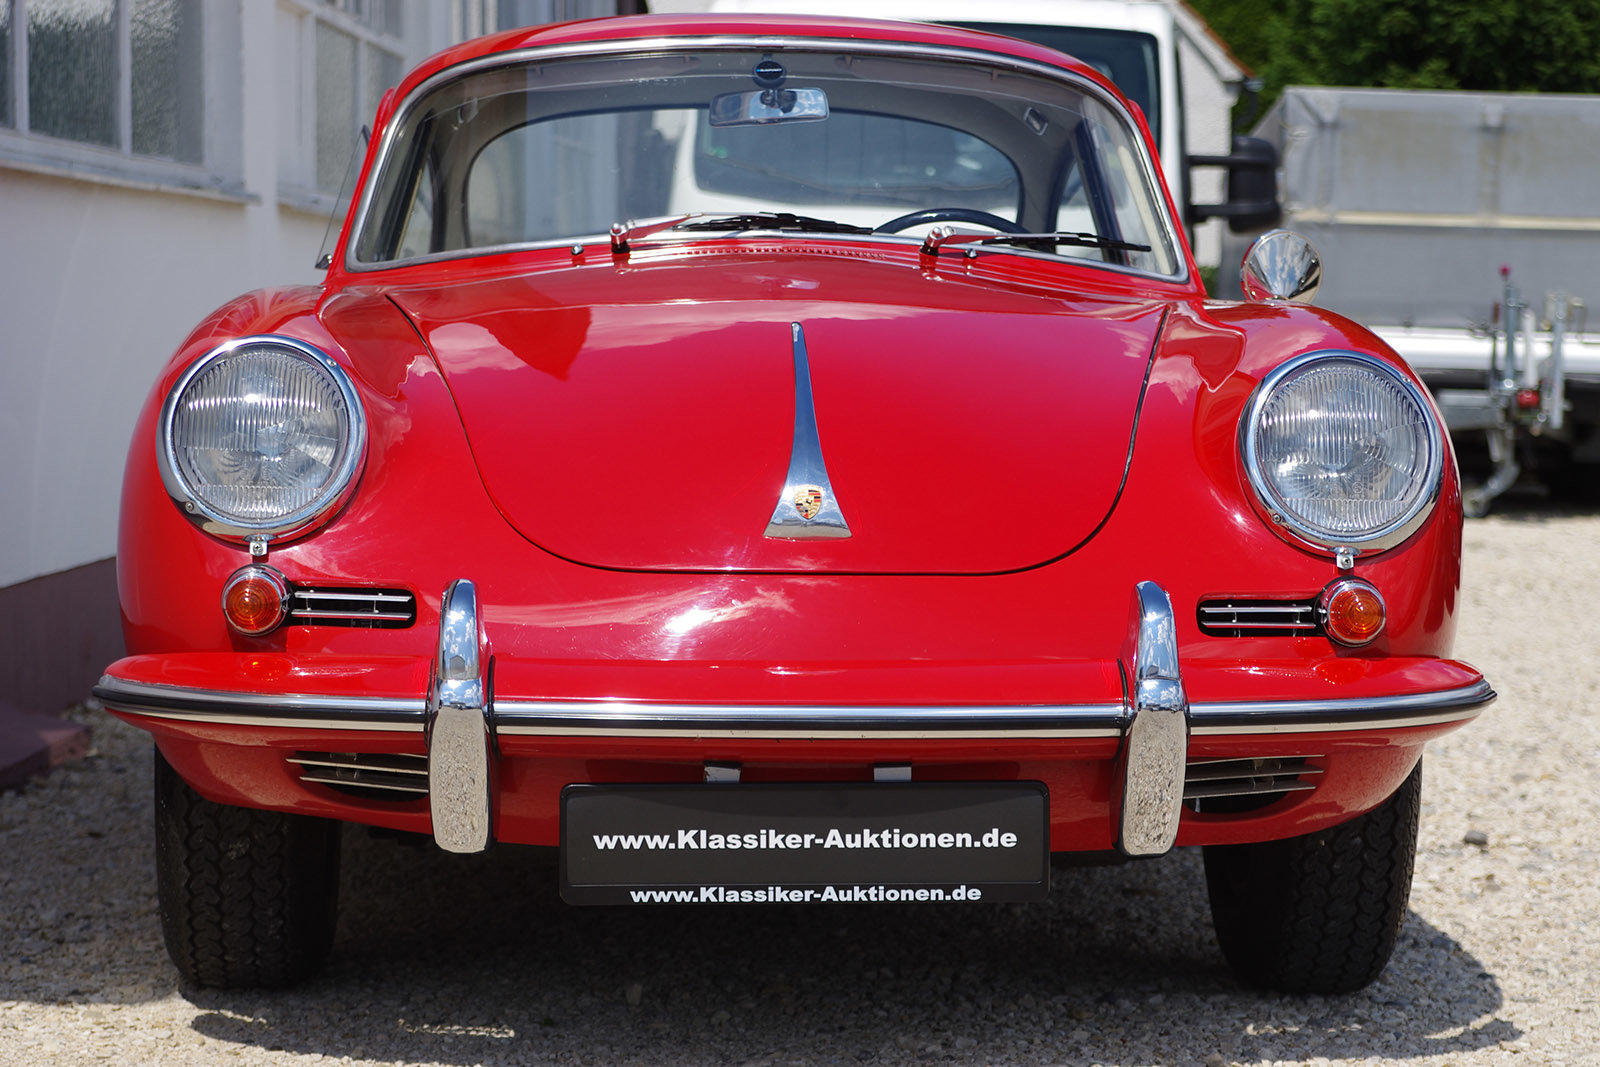 1964 Porsche 356 C Coupé *restored* MATCHING NUMBERS* For Sale (picture 1 of 6)